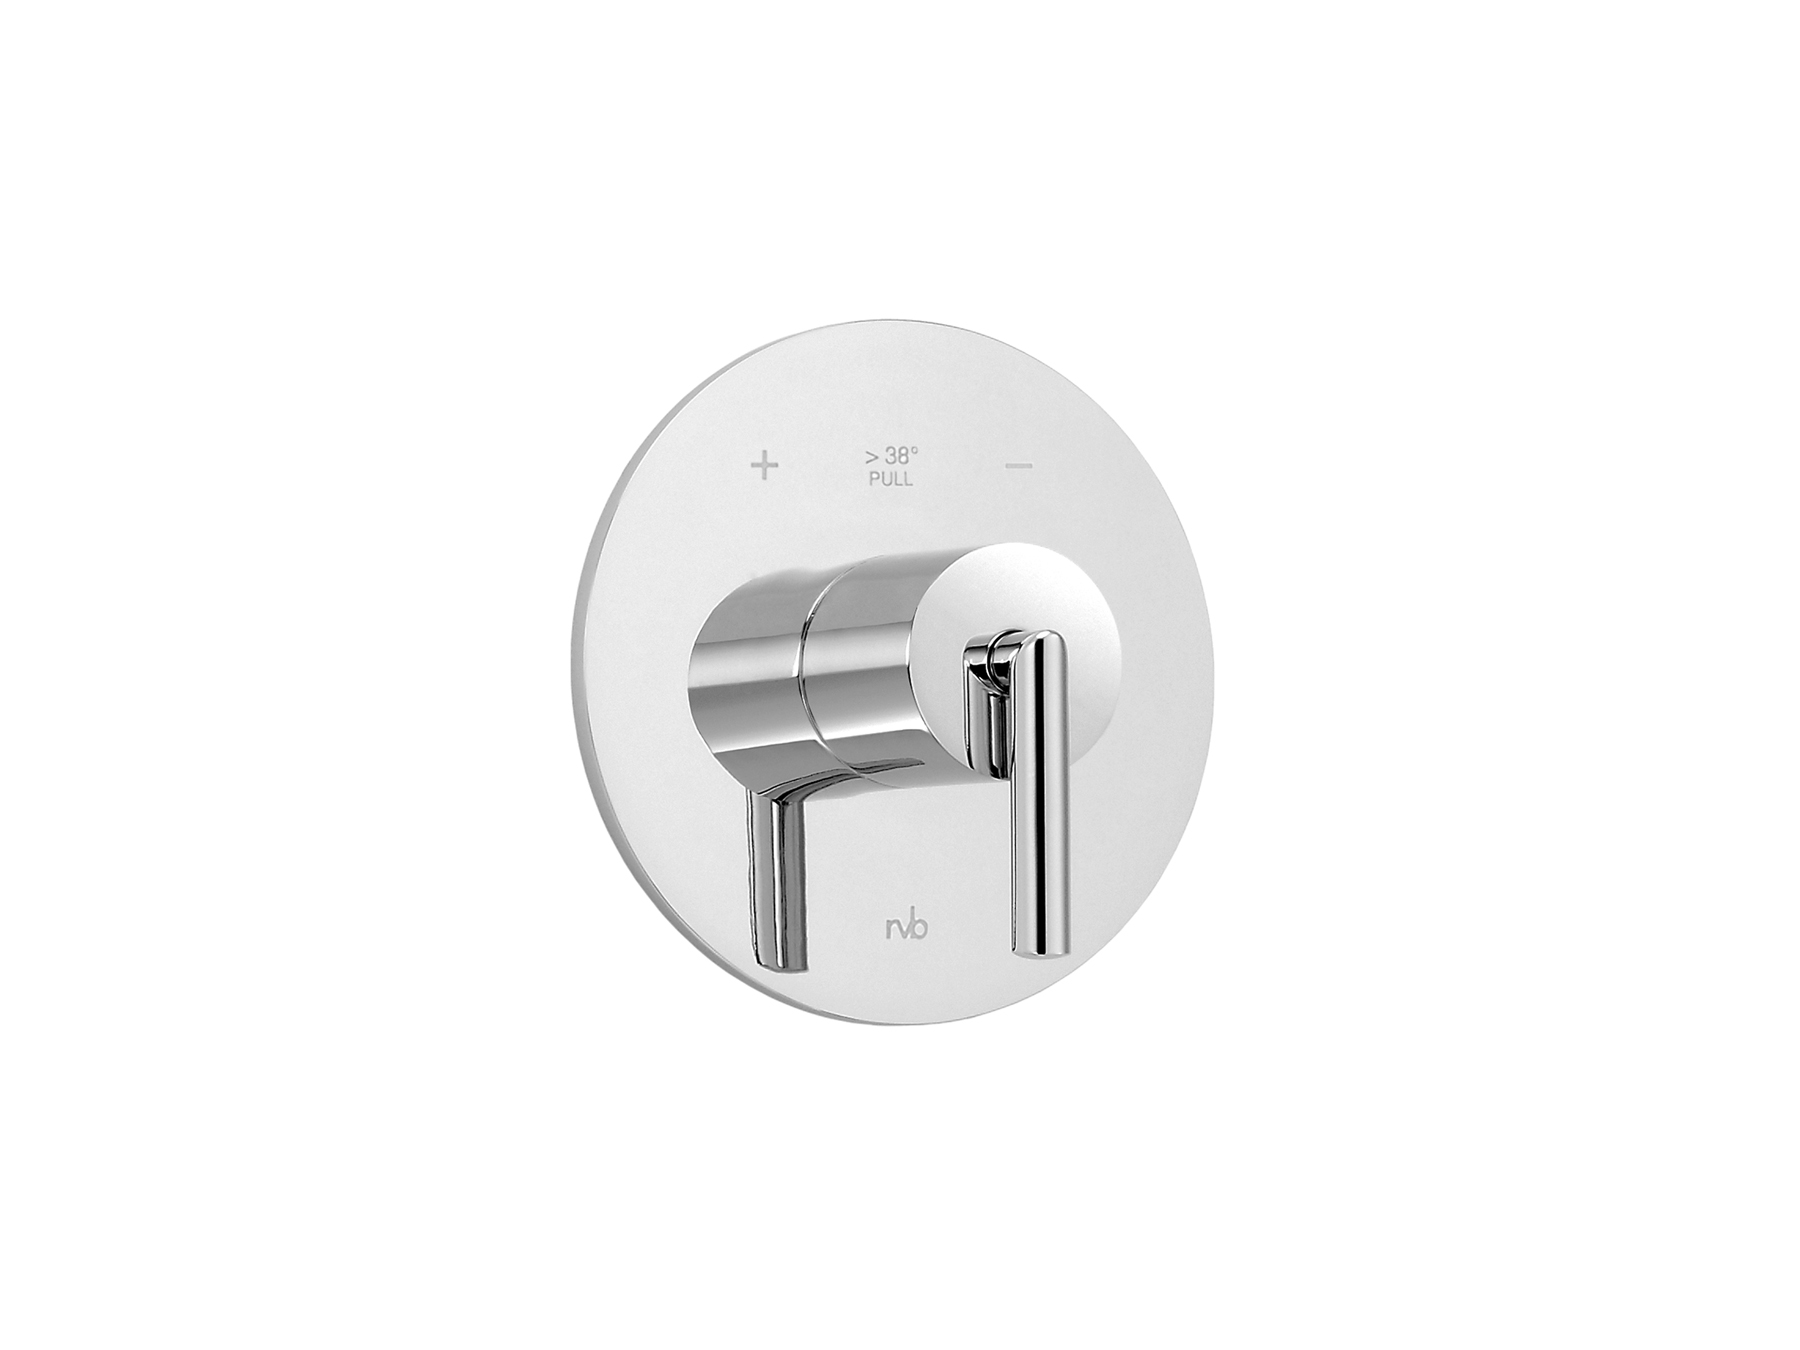 Concealed shower thermostat 4031.--.74